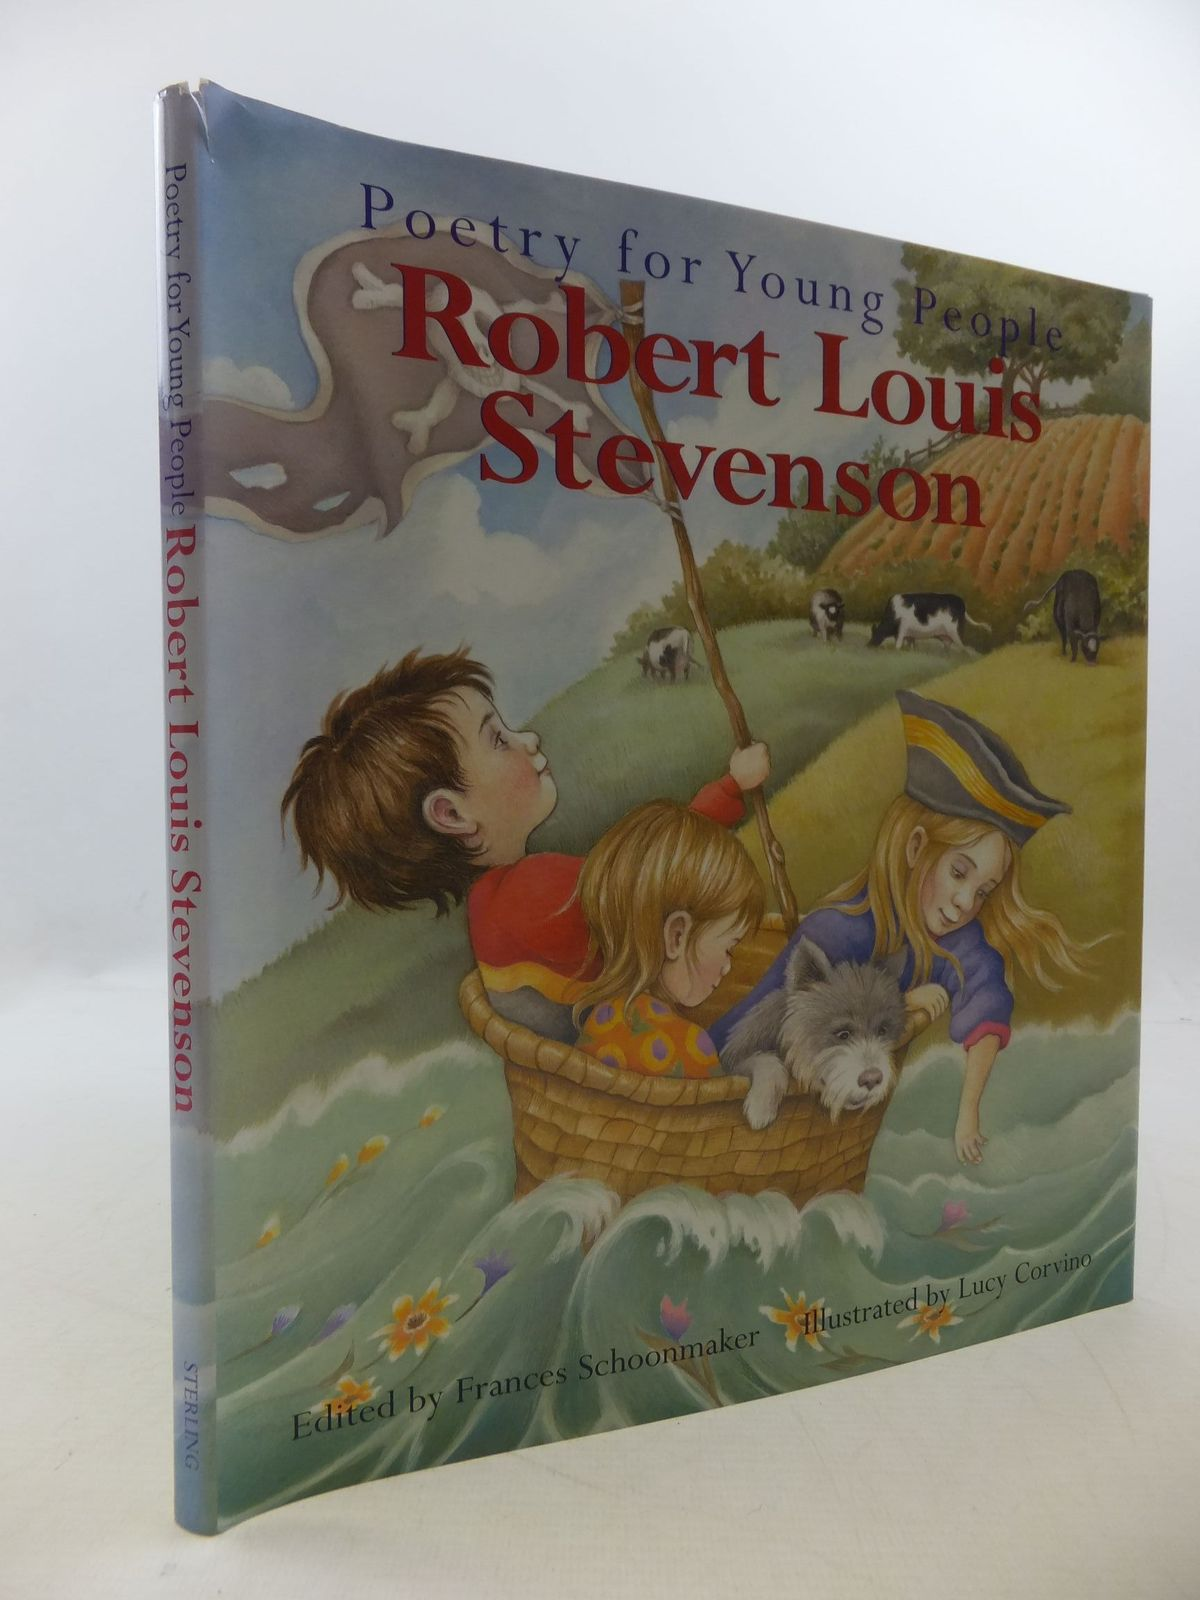 Photo of POETRY FOR YOUNG PEOPLE ROBERT LOUIS STEVENSON written by Stevenson, Robert Louis Schoonmaker, Frances illustrated by Corvino, Lucy published by Sterling Publishing Co., Inc. (STOCK CODE: 2112610)  for sale by Stella & Rose's Books